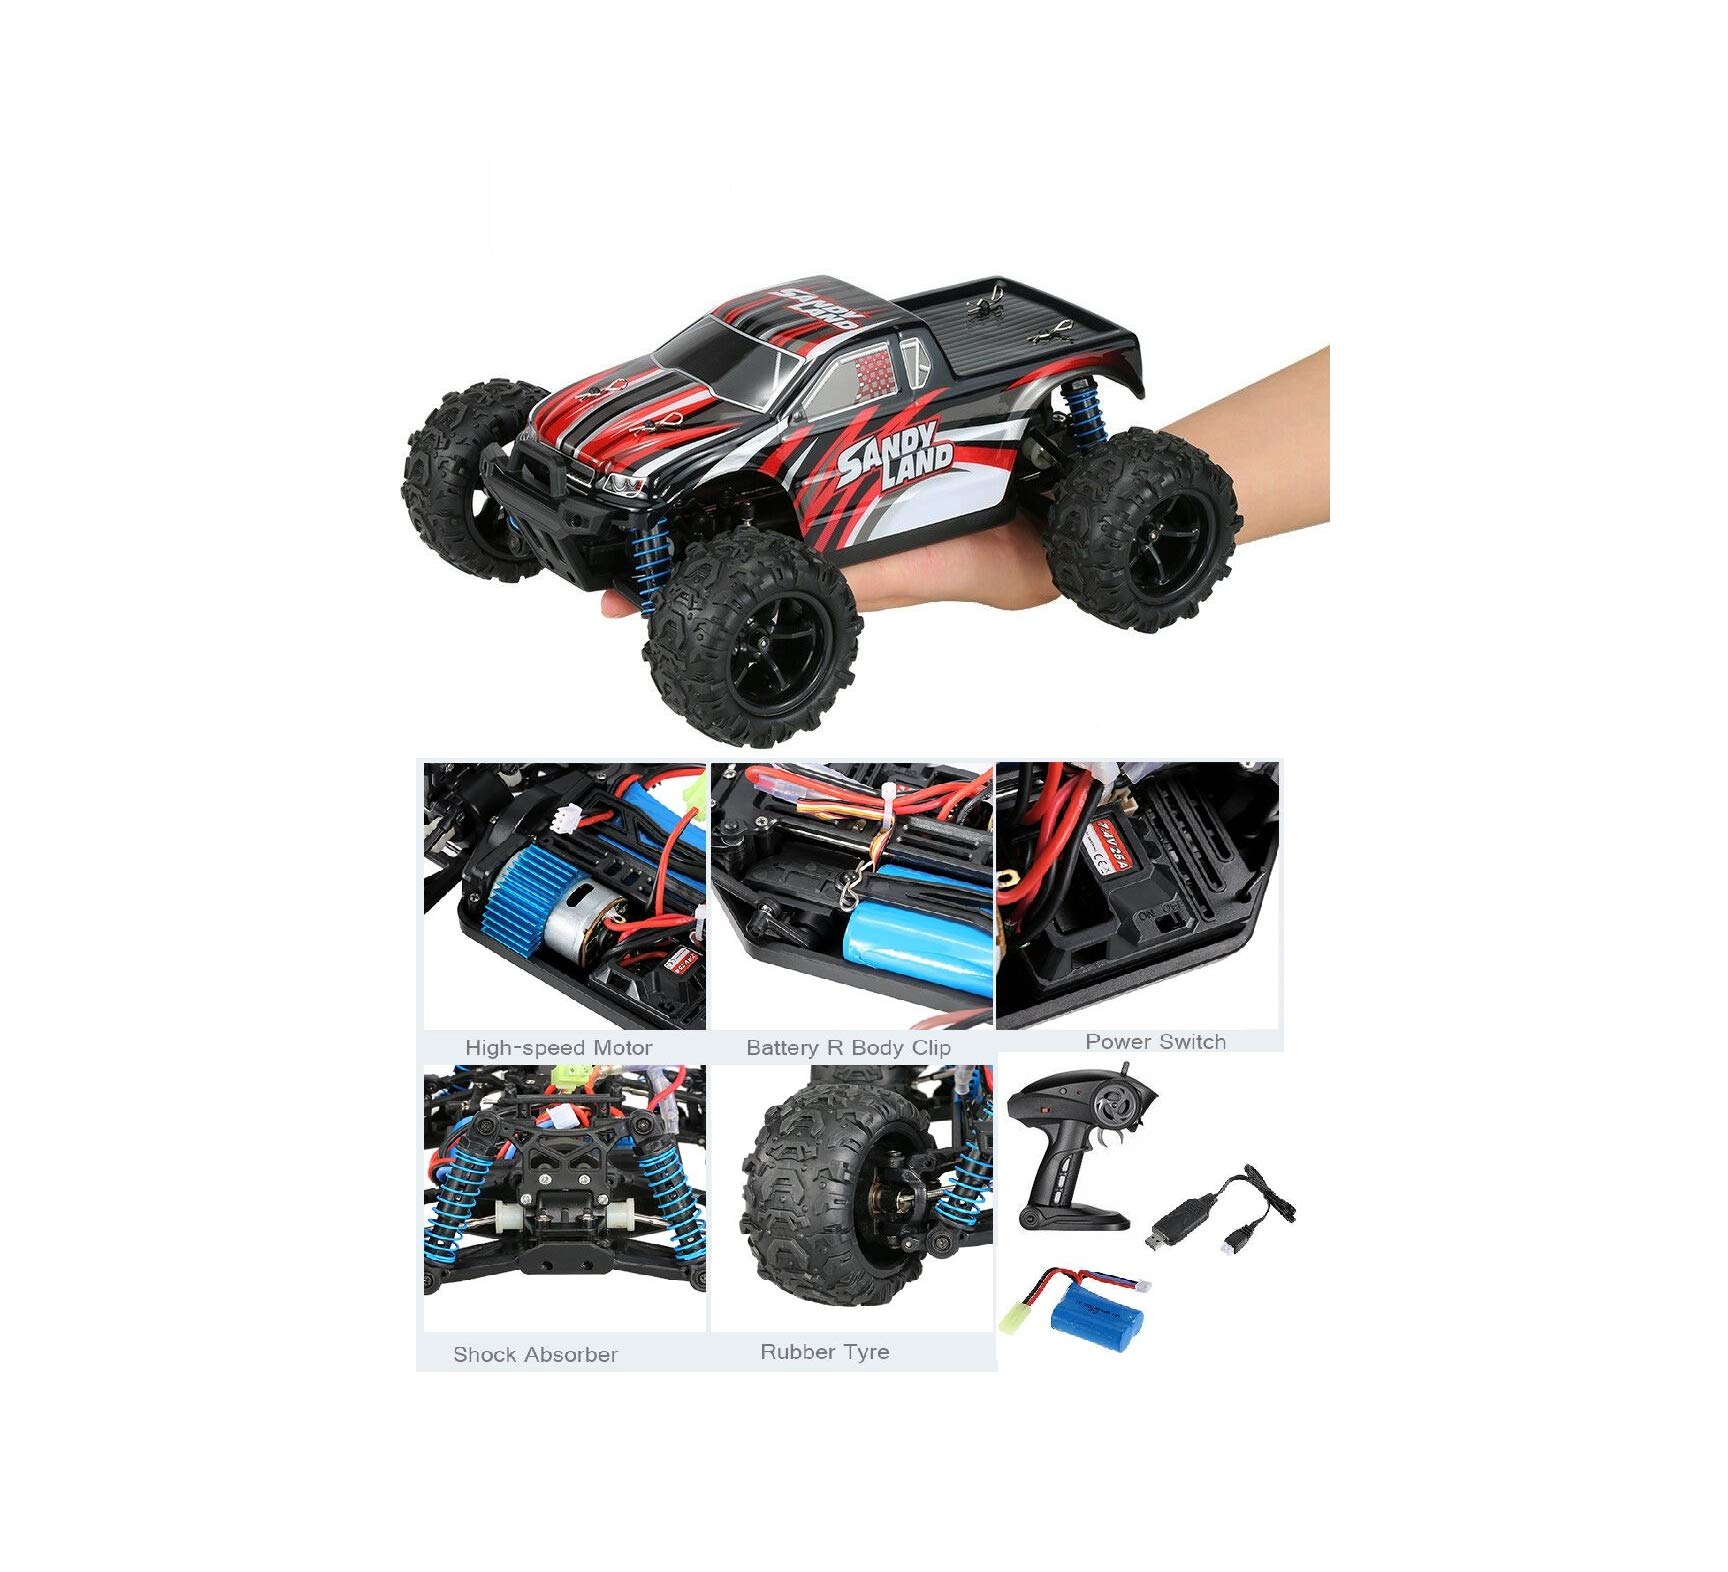 Hobby RC Sport 1:18 2.4G 4WD Electric Sandy Land Truck RC Car E01M09 Cute Gift Quick Arrive